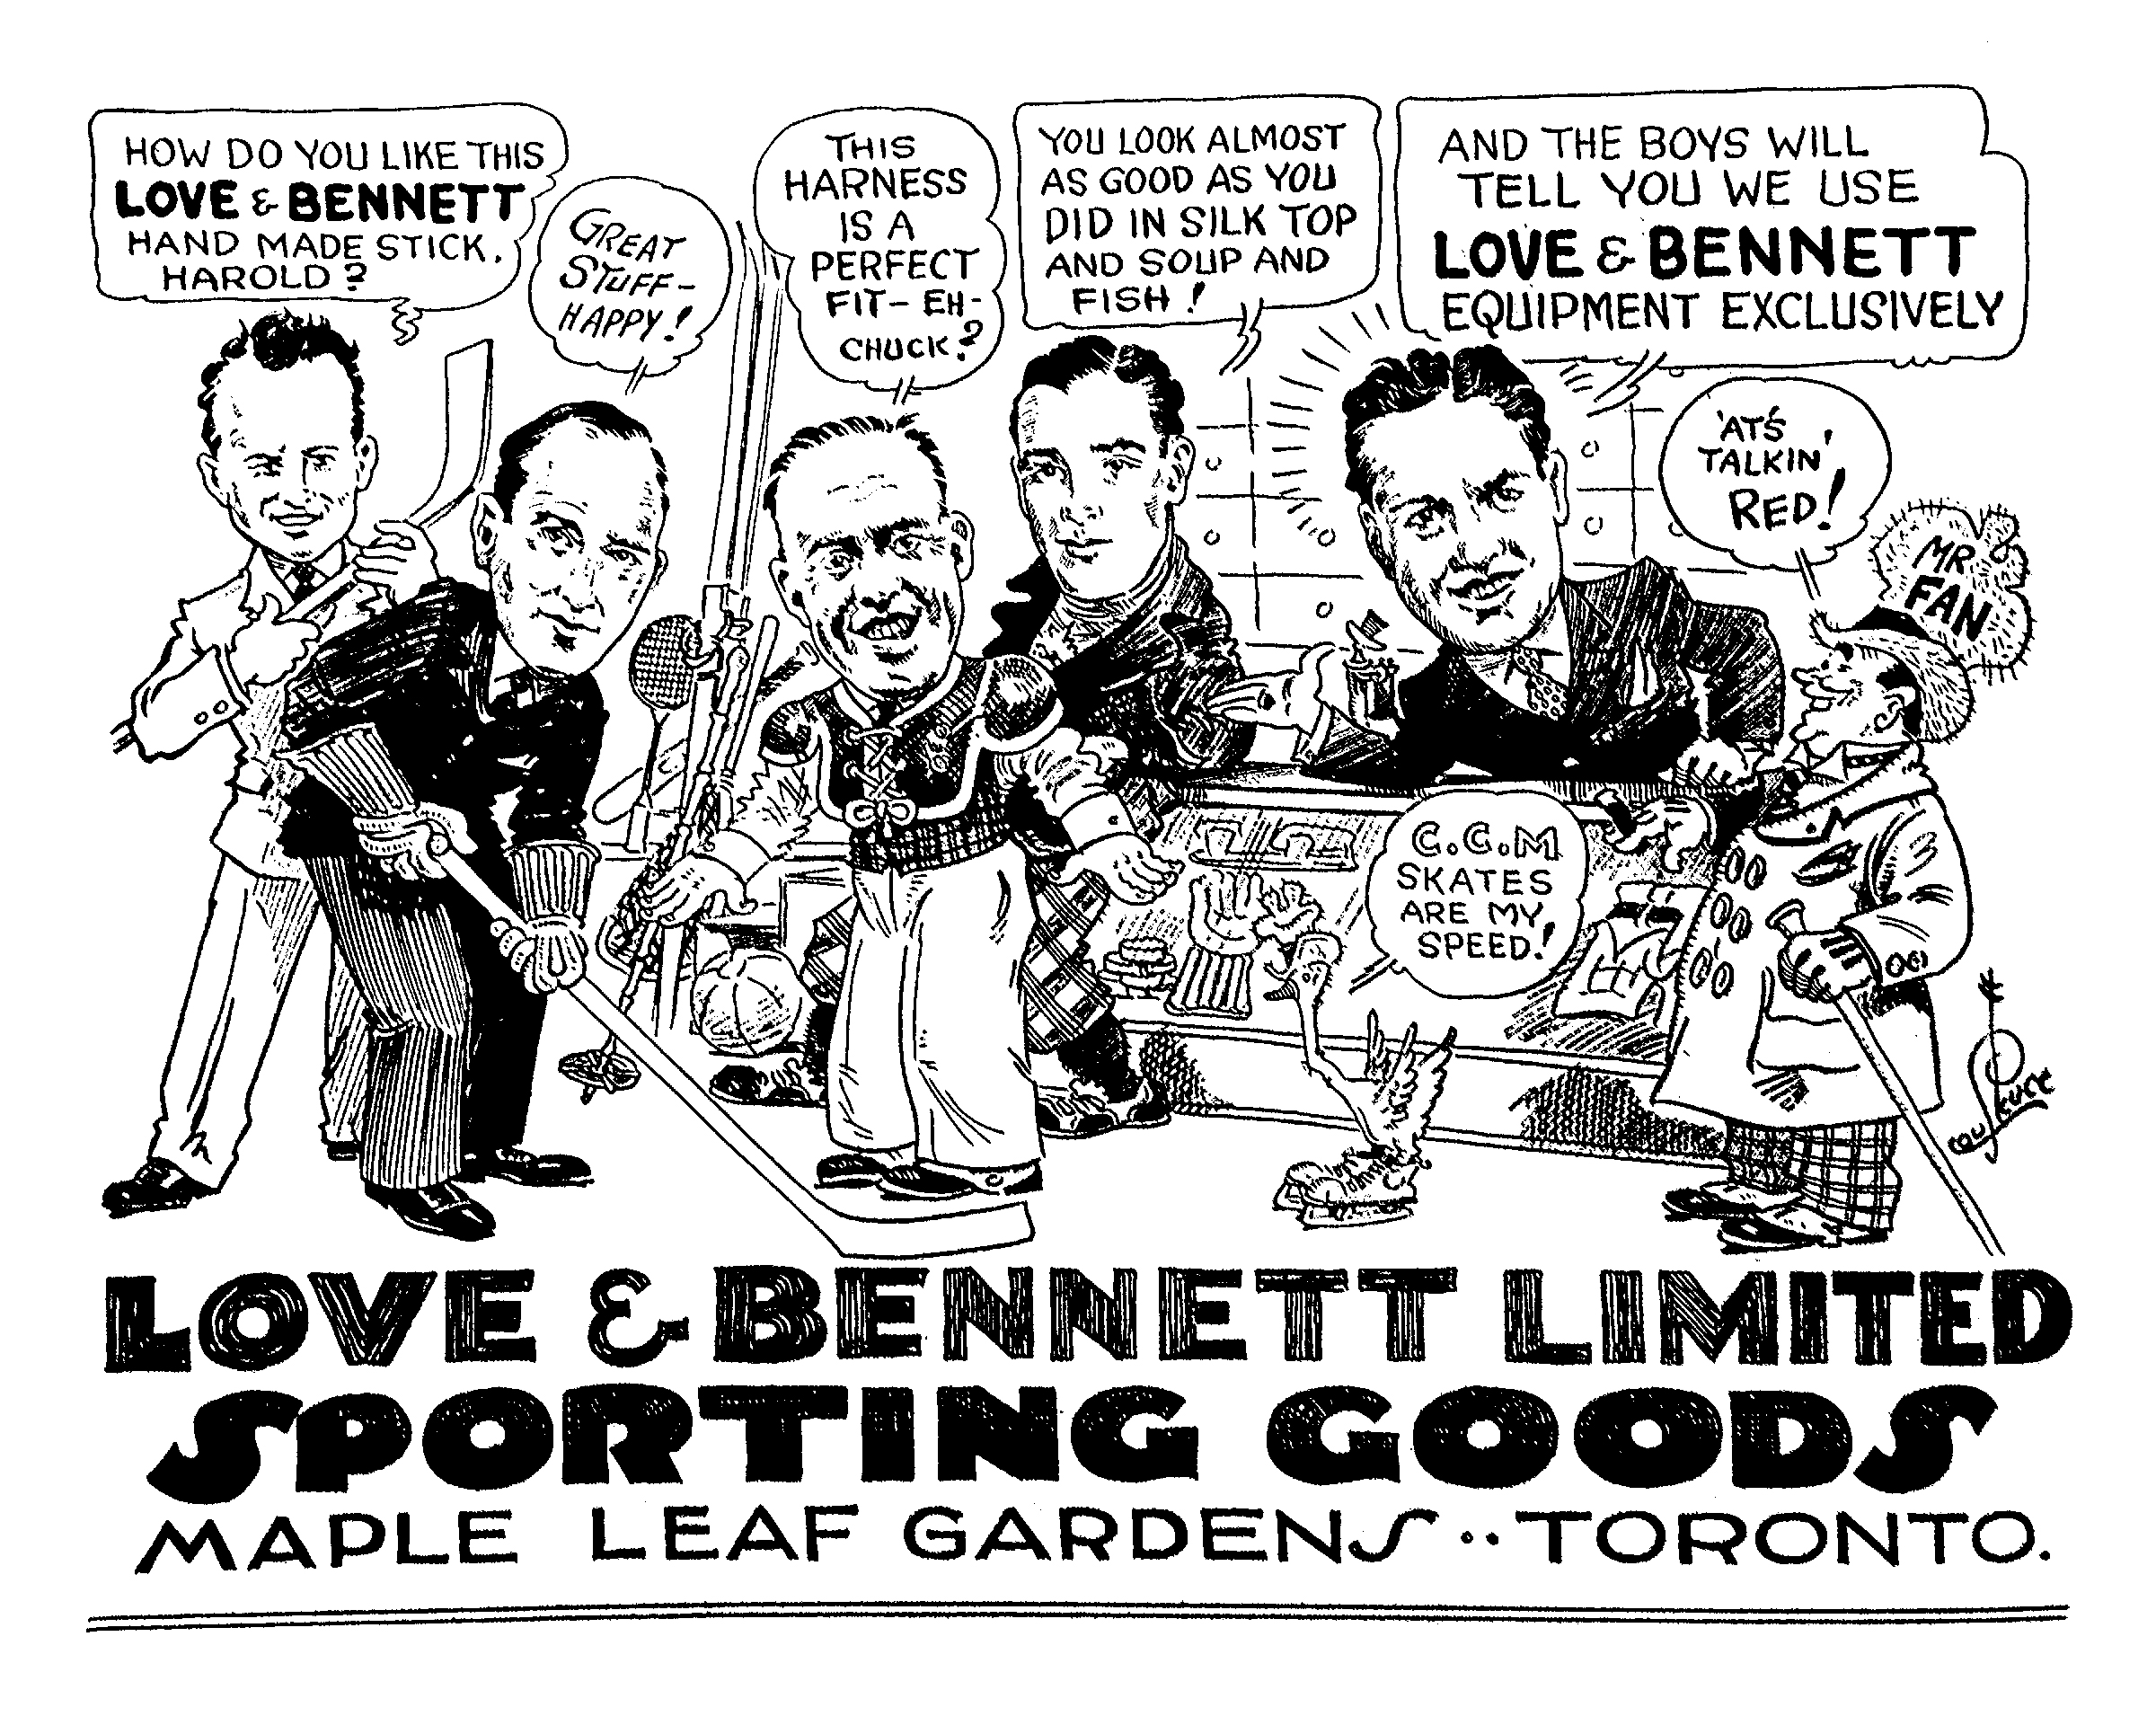 Photo of Love & Bennett ad by Lou Skuce